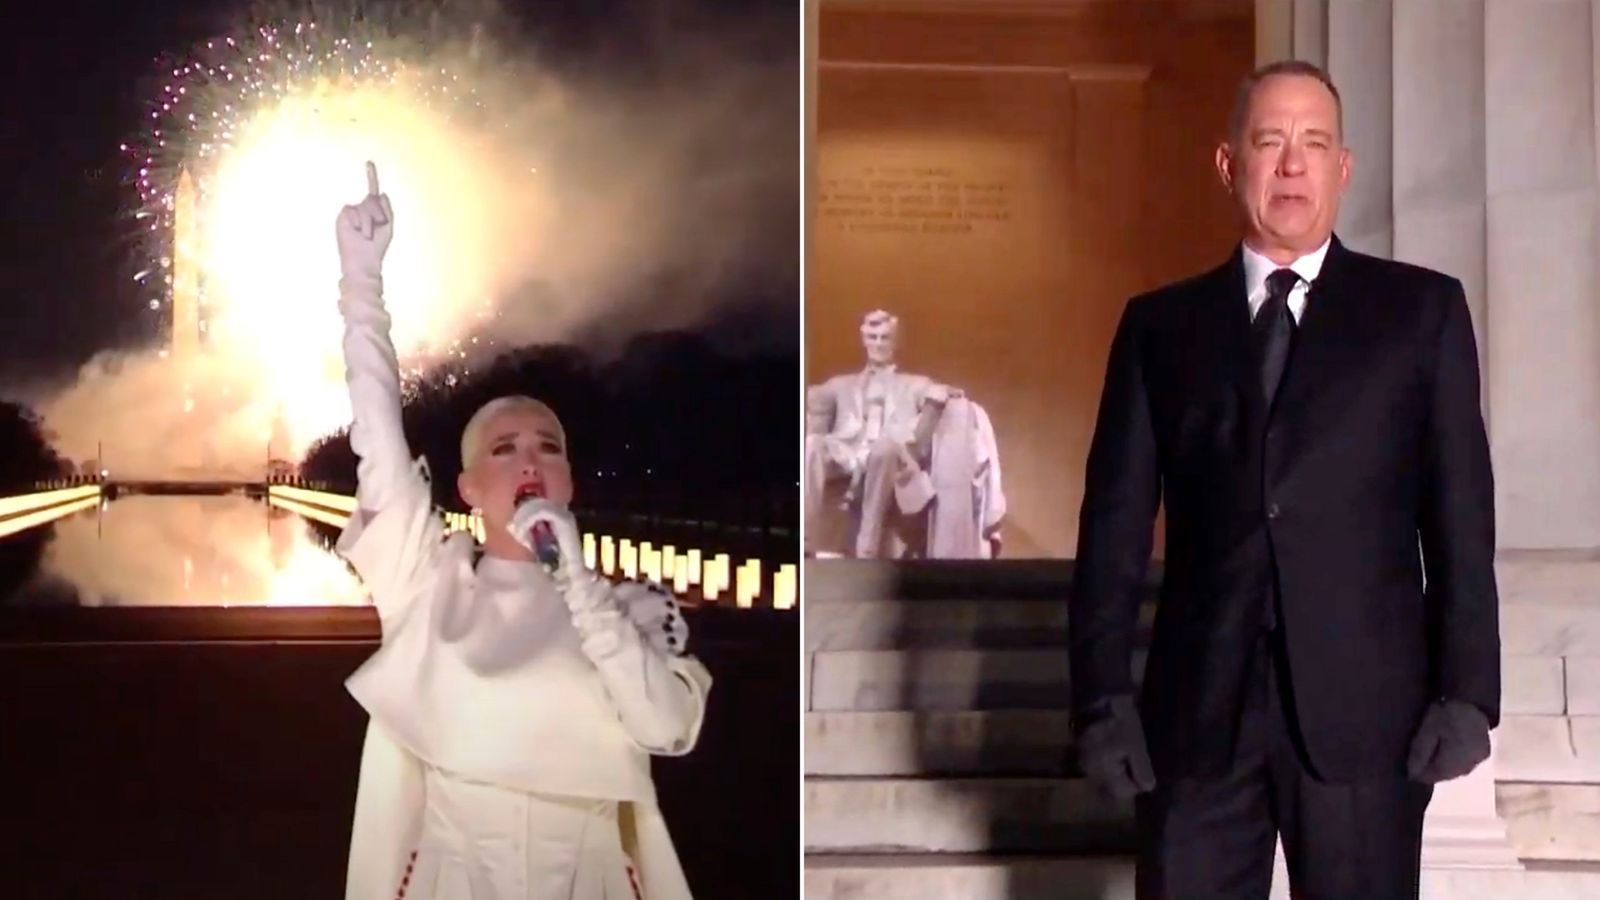 Tom Hanks looks cold and Katy Perry brings the Fireworks: Best bits from Biden's inauguration gala thumbnail